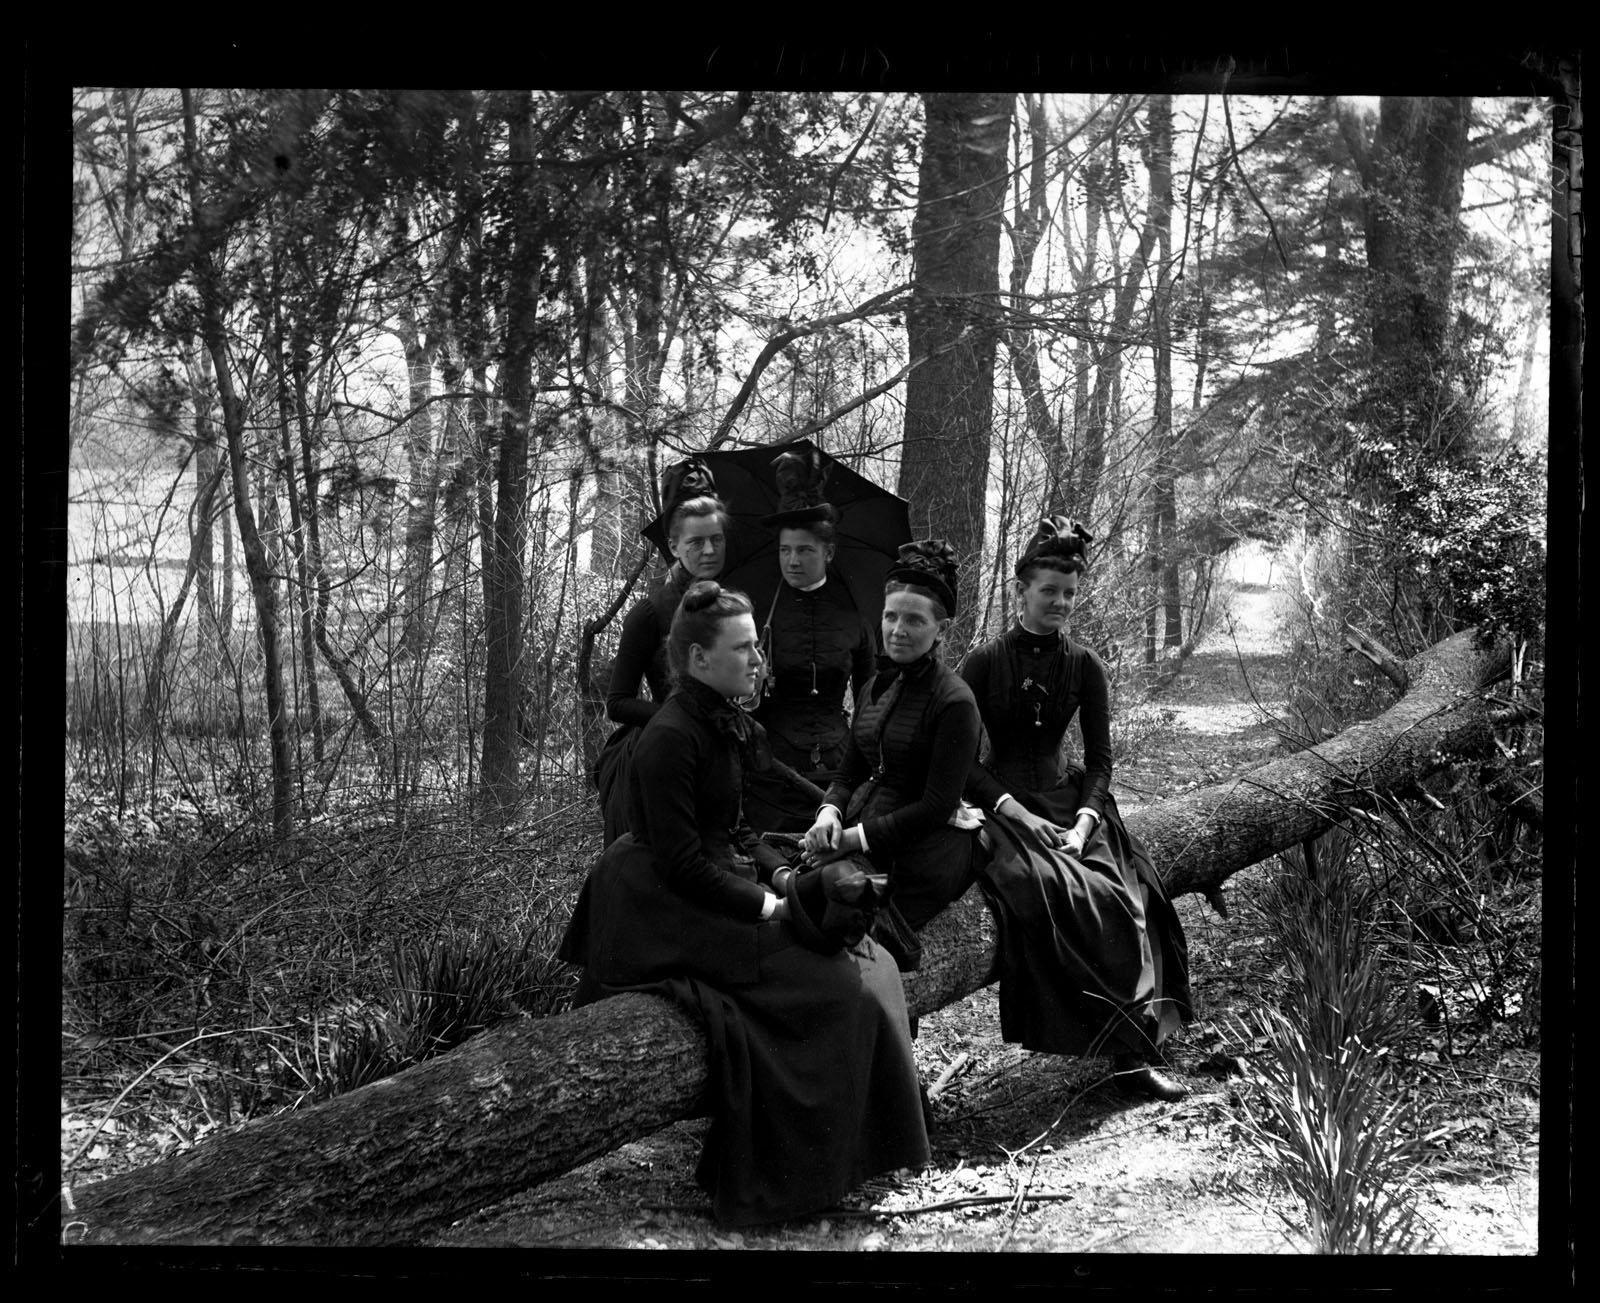 Morris, Marriott Canby, 1863-1948, photographer. Group on fallen tree. Bartram's Garden. Mrs Shoemaker, Bird & Minnie Tyson Shoemaker, Minnie Kimber & Bess. [Philadelphia] April 28, 1888.